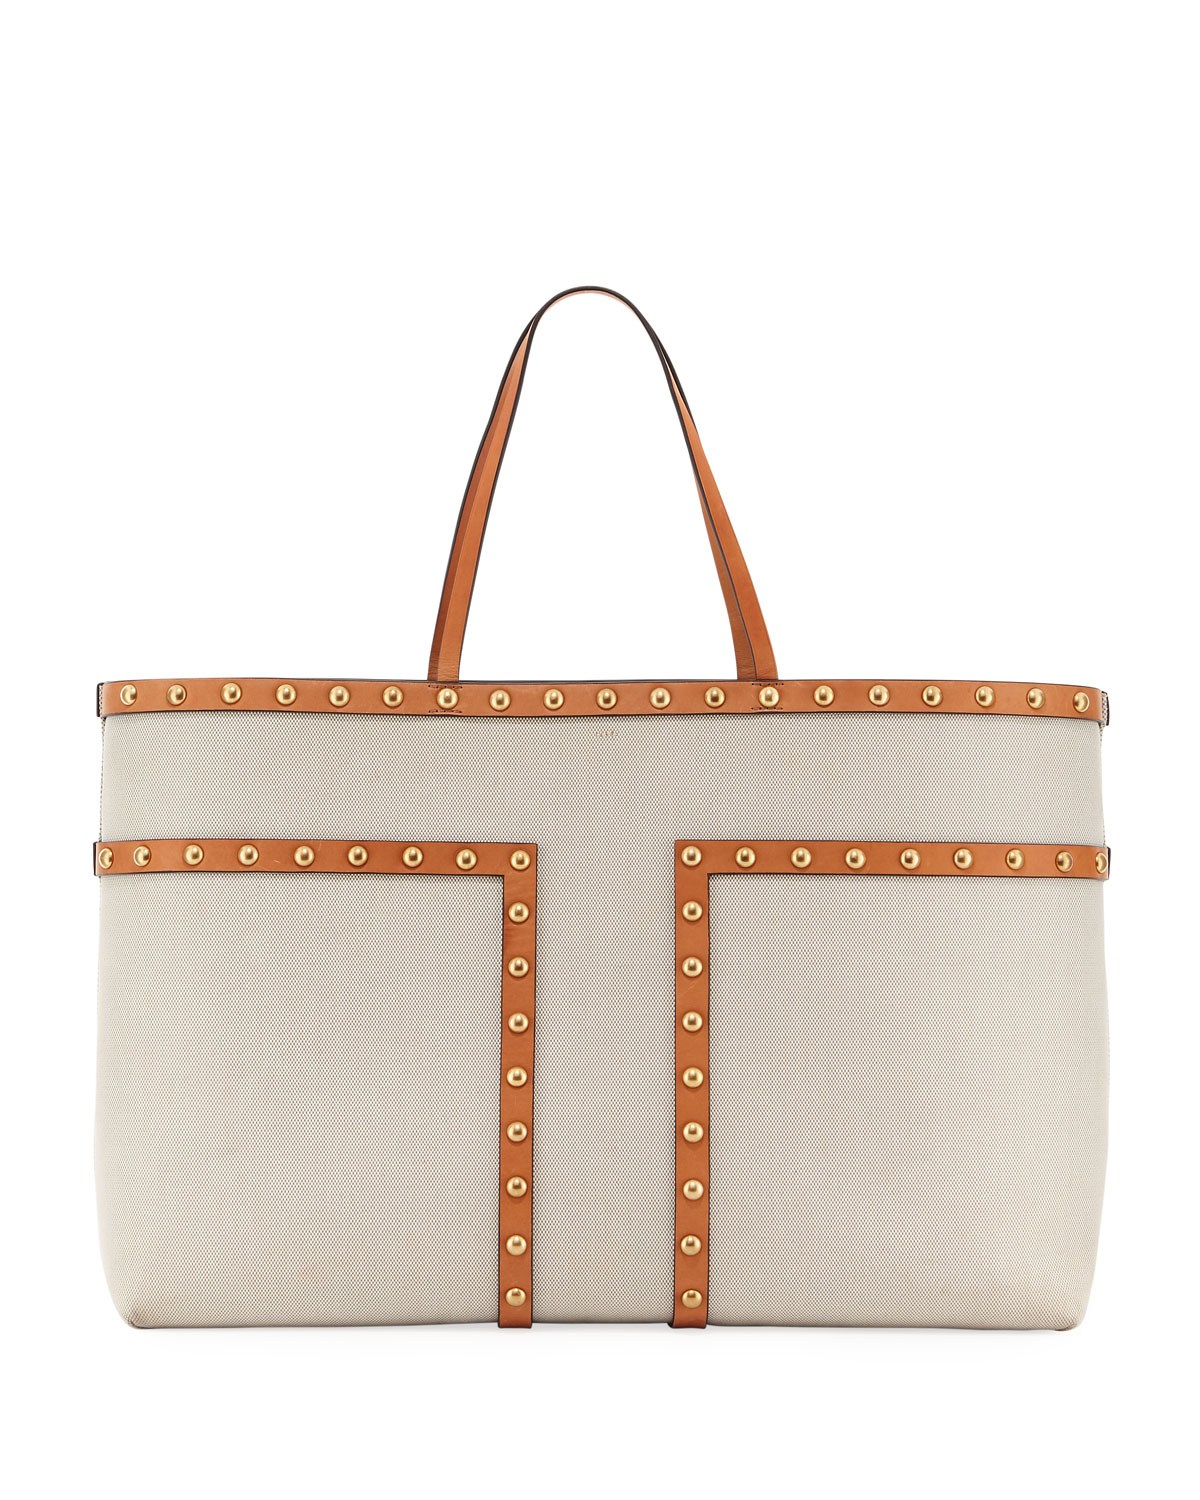 6a4e4ca688e1 Tory Burch Block-T Stud XL Canvas Tote Bag